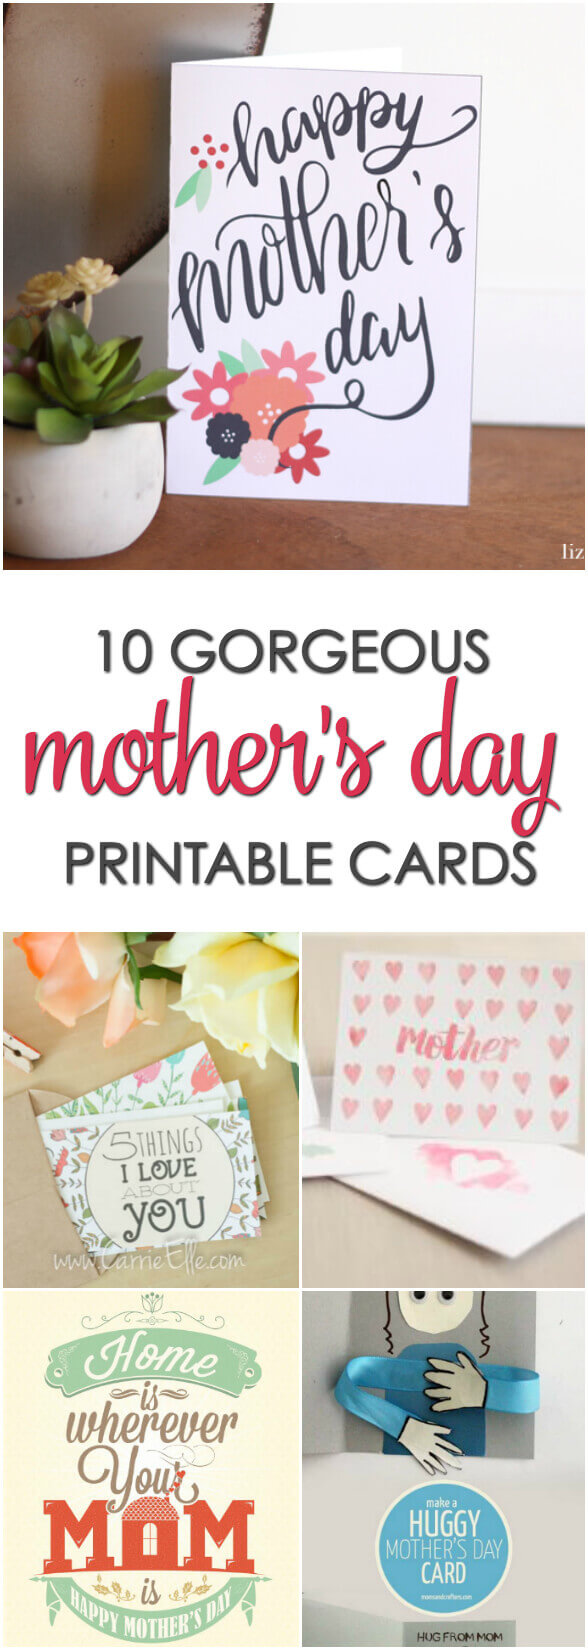 10 Gorgeous Mother's Day Printable Cards - Surprise mom with one of these free Mother's Day Card Printables